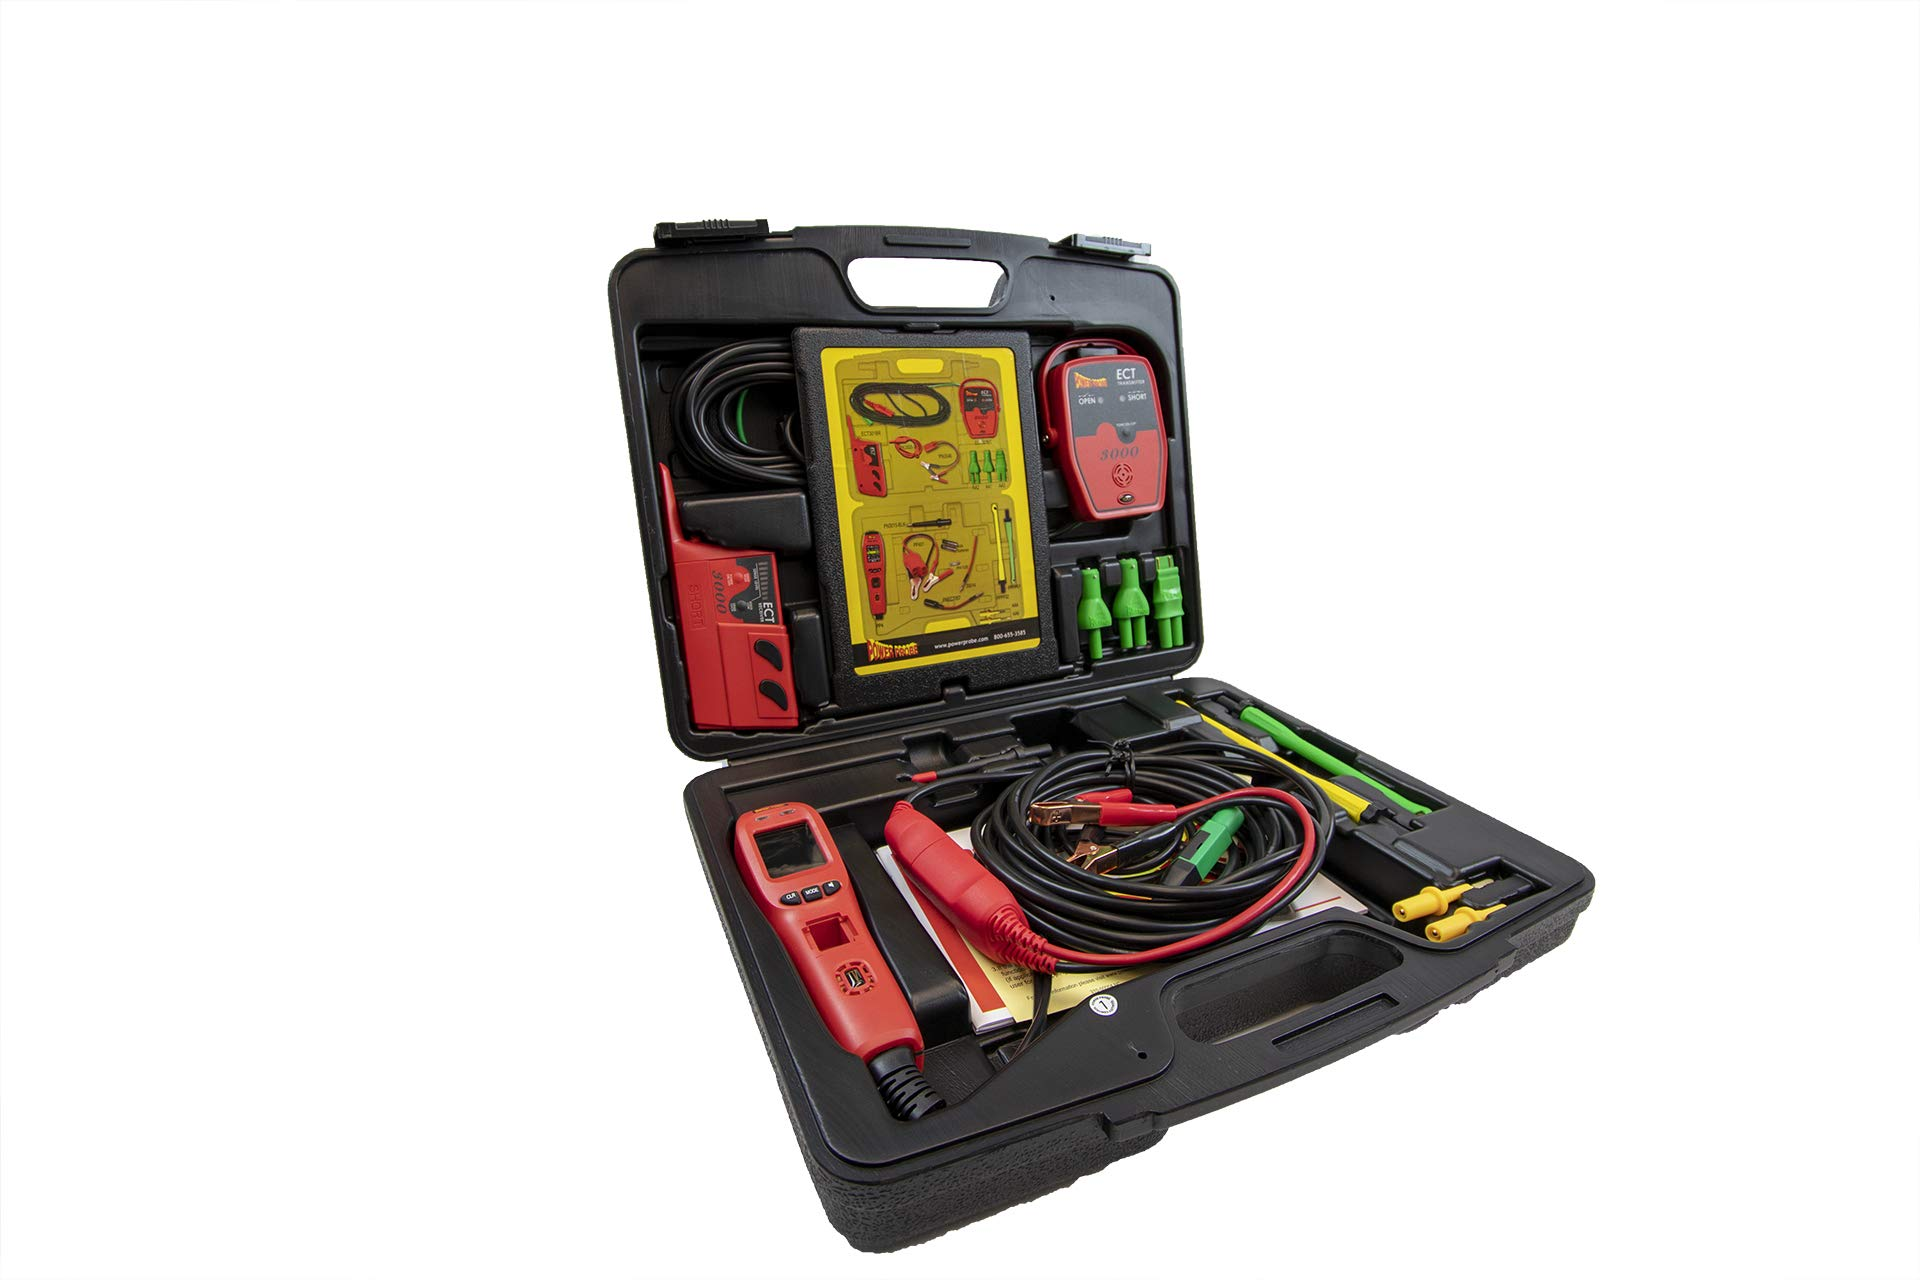 Diesel Laptops Power Probe IV Master Combo Kit Bundled with 12-Months of Truck Fault Codes by Diesel Laptops (Image #6)